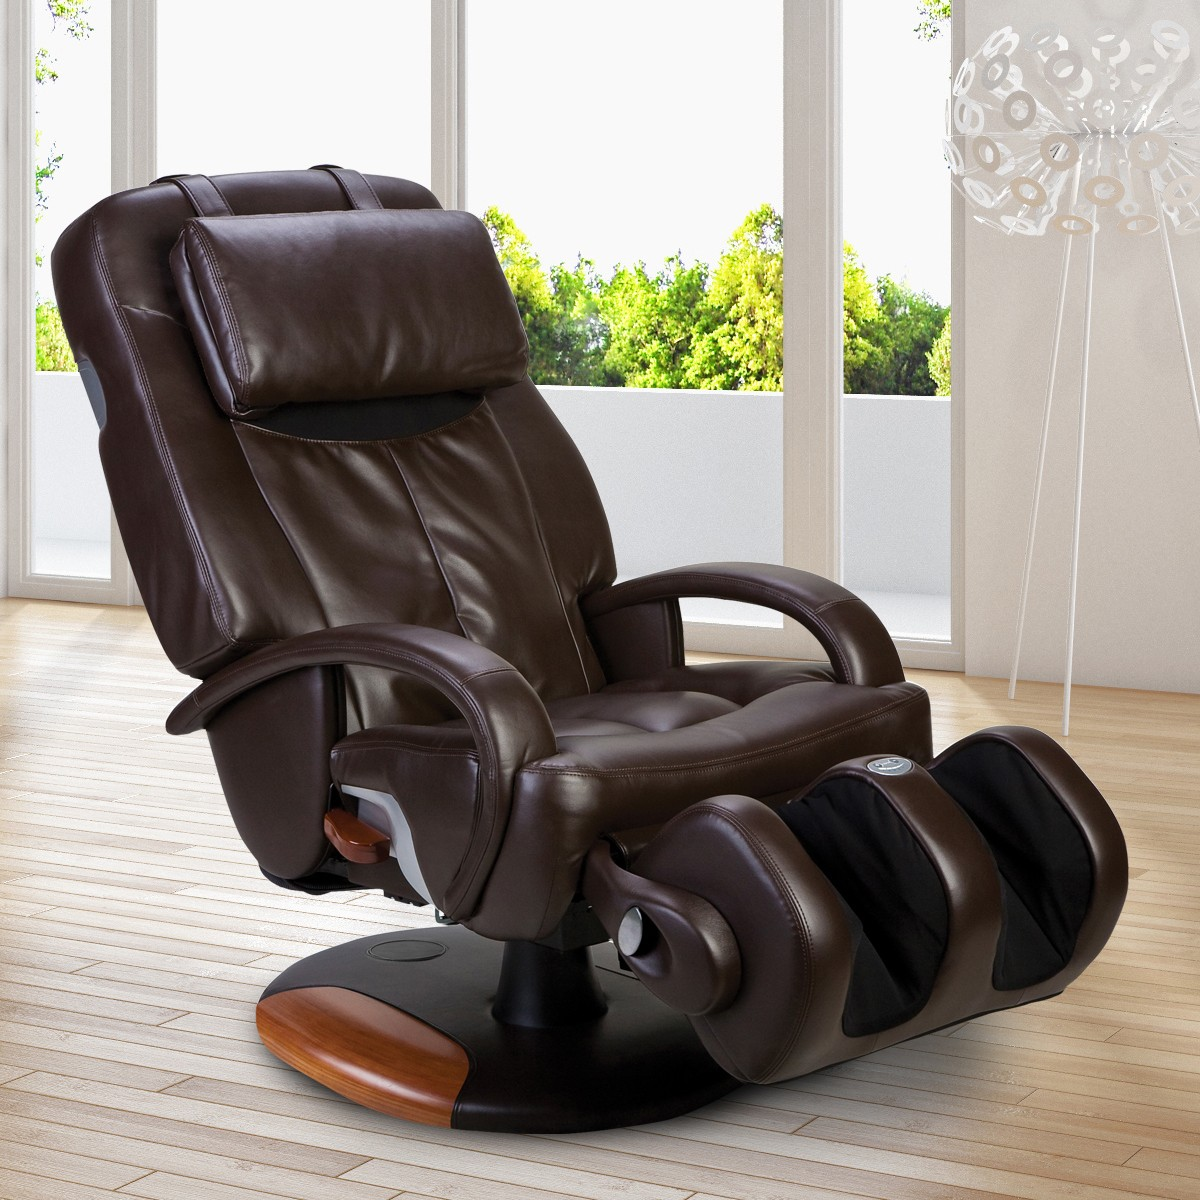 Top 10 Best Relax the Back Massage Chair Comparison